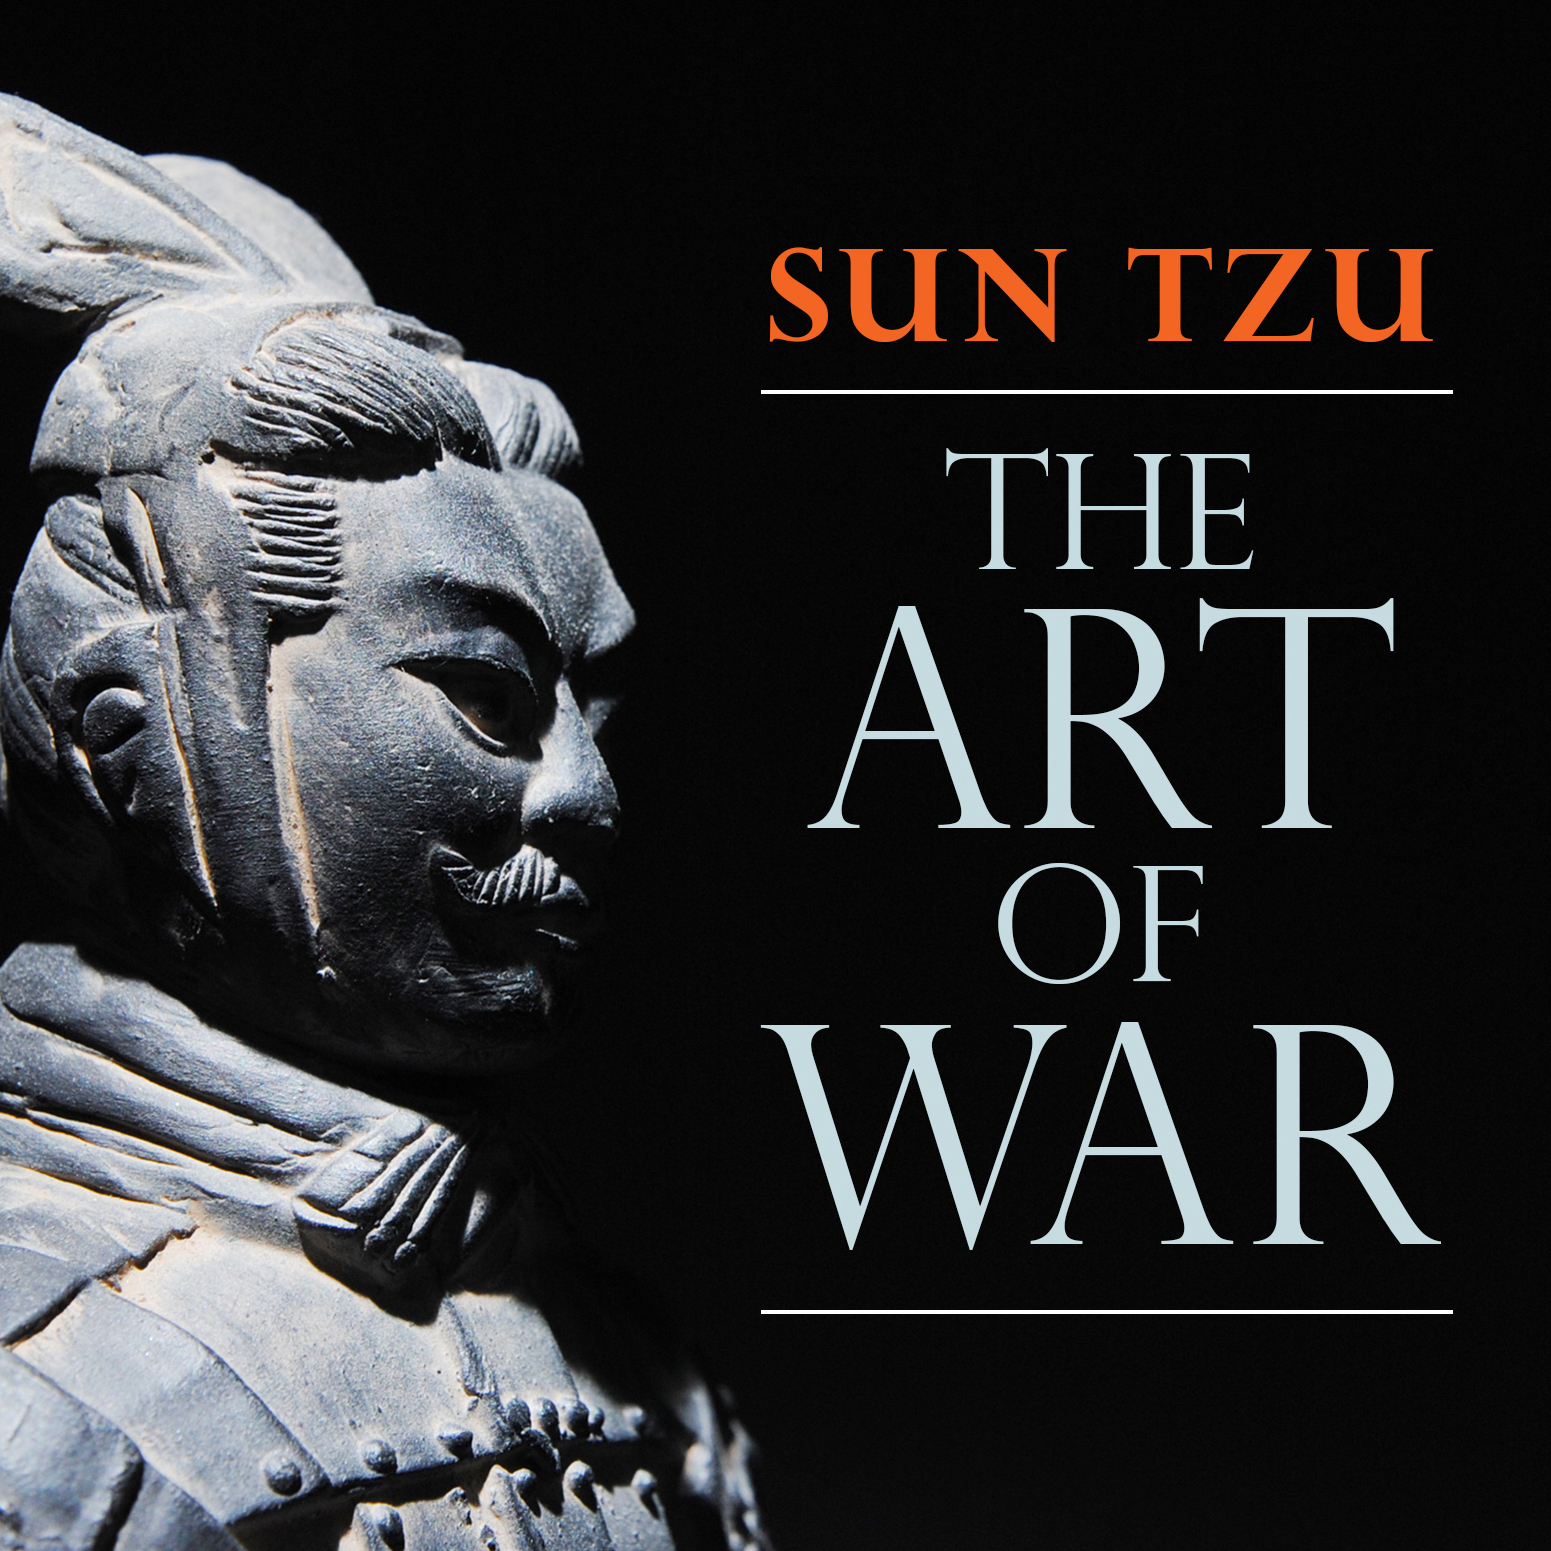 essay on the art of war by sun tzu The art of war was written by a chinese general named sun tzu more than 2,500 years ago, possibly in the 6th century bc.